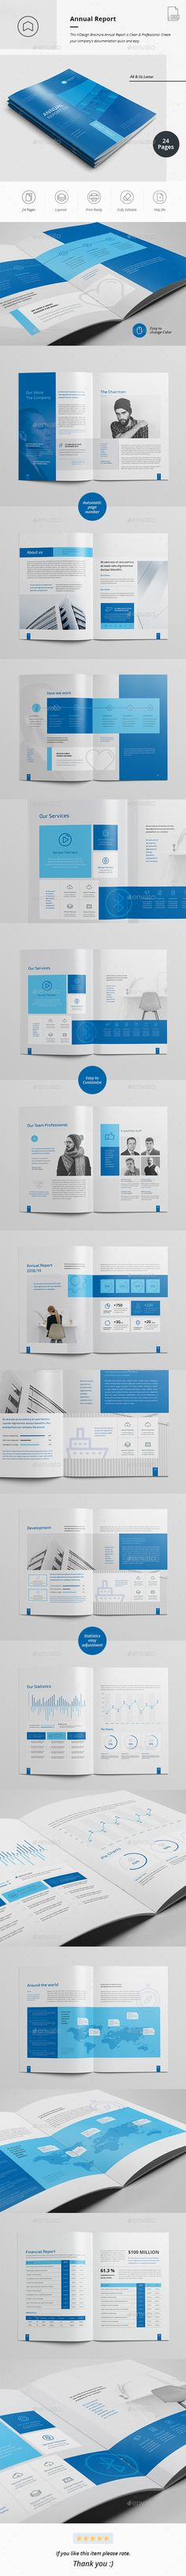 Annual Report Brochure Template InDesign INDD - 24 Custom Pages, A4 & Us Letter Size